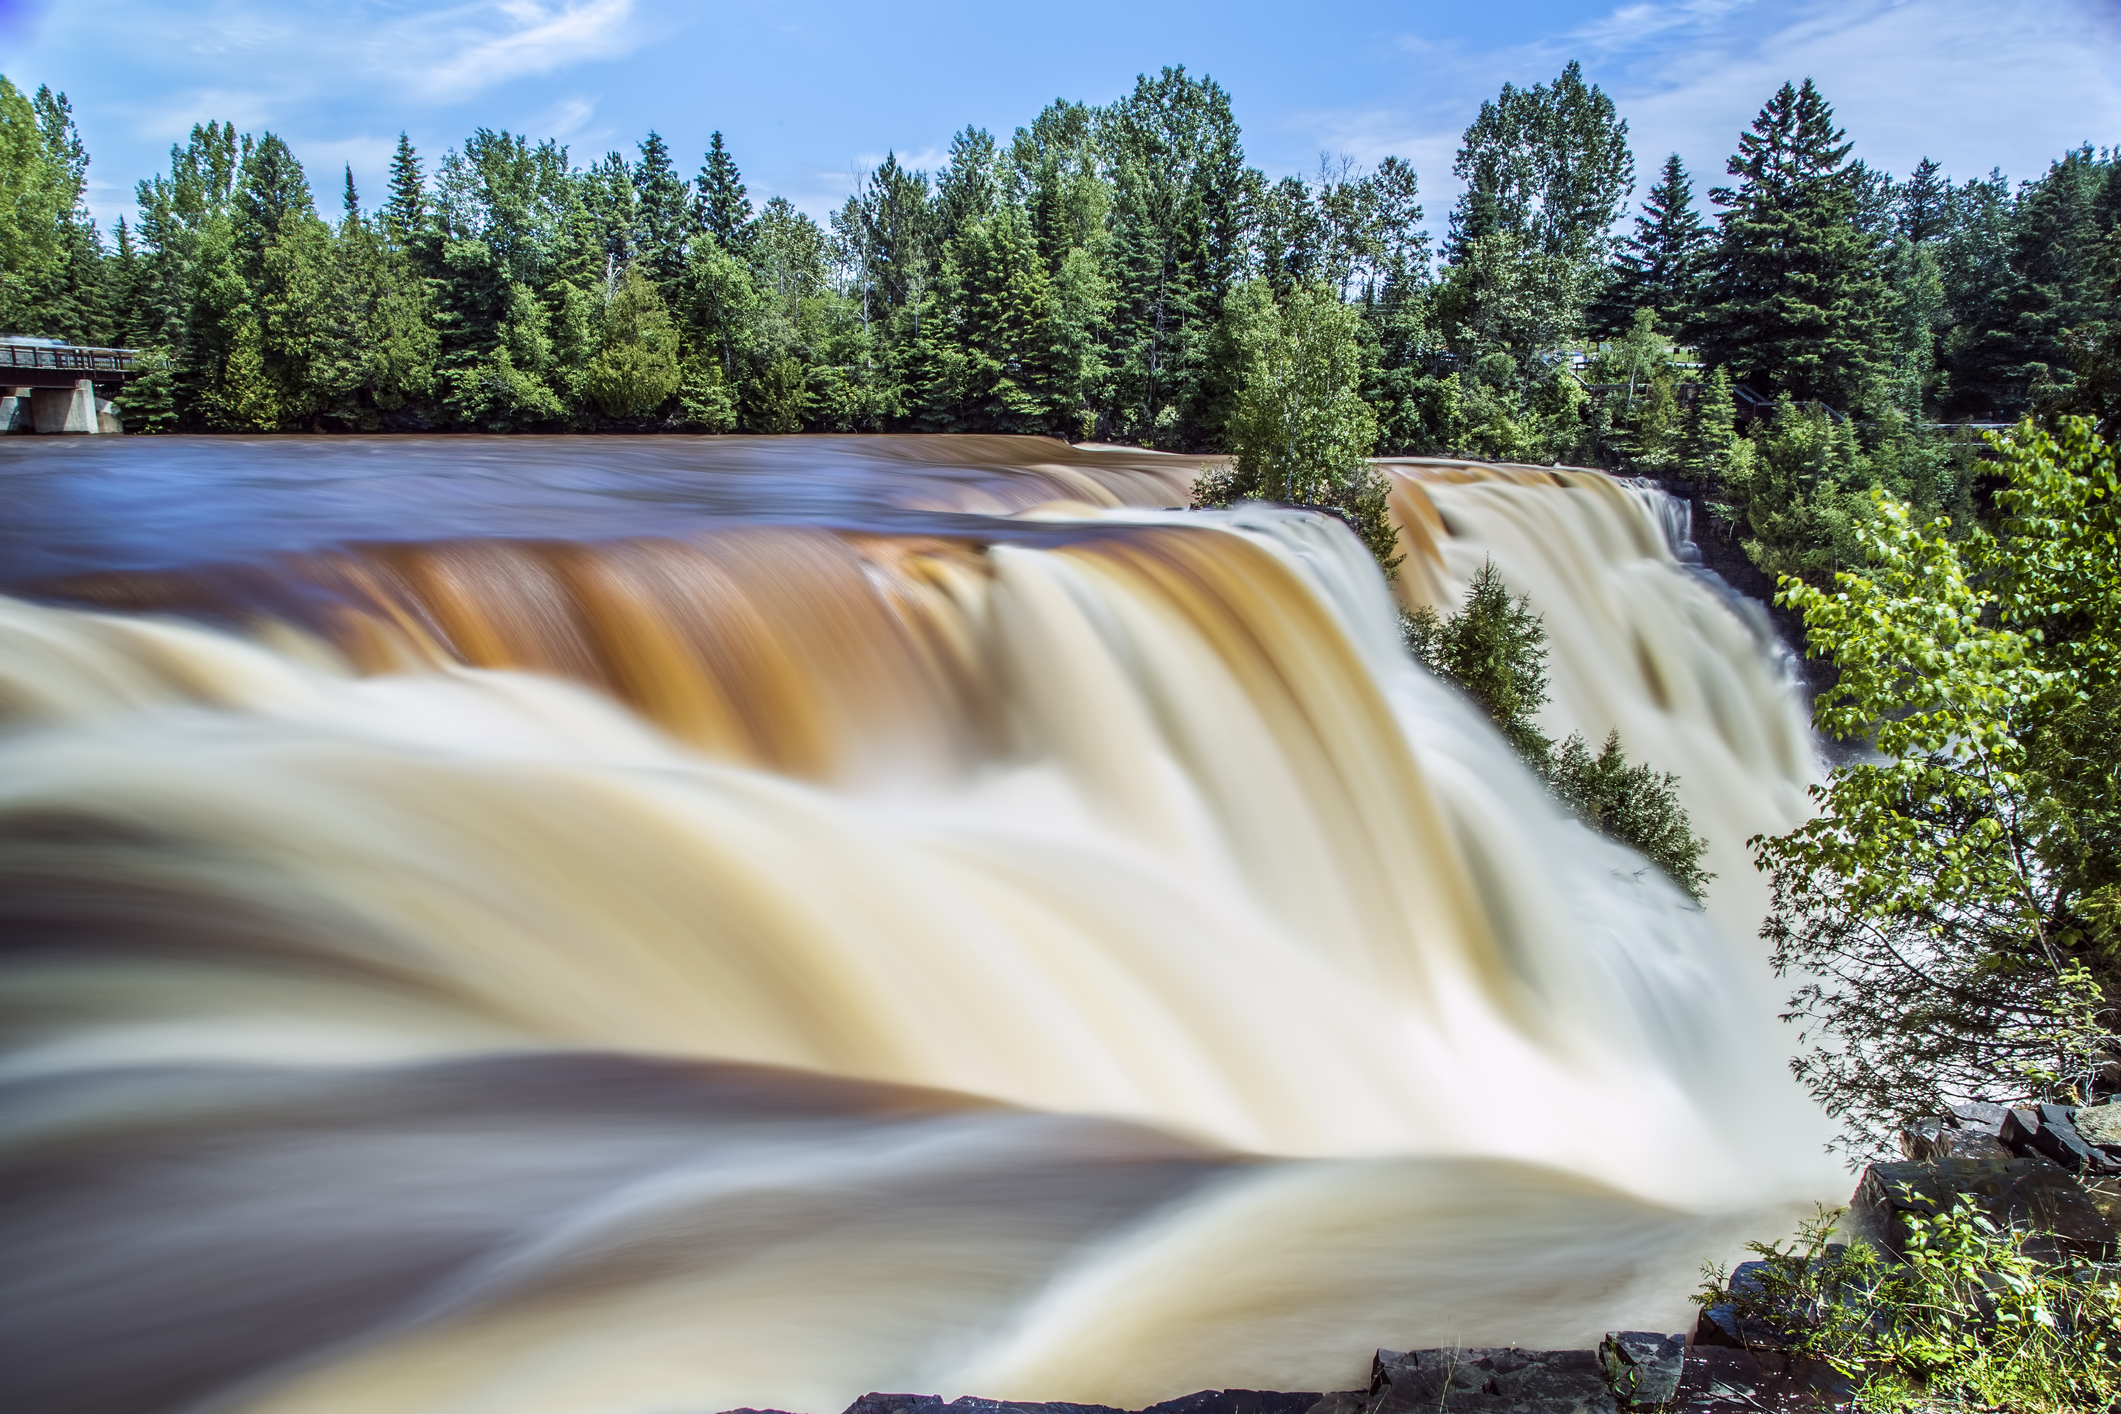 The steady and powerful flow of a waterfall.